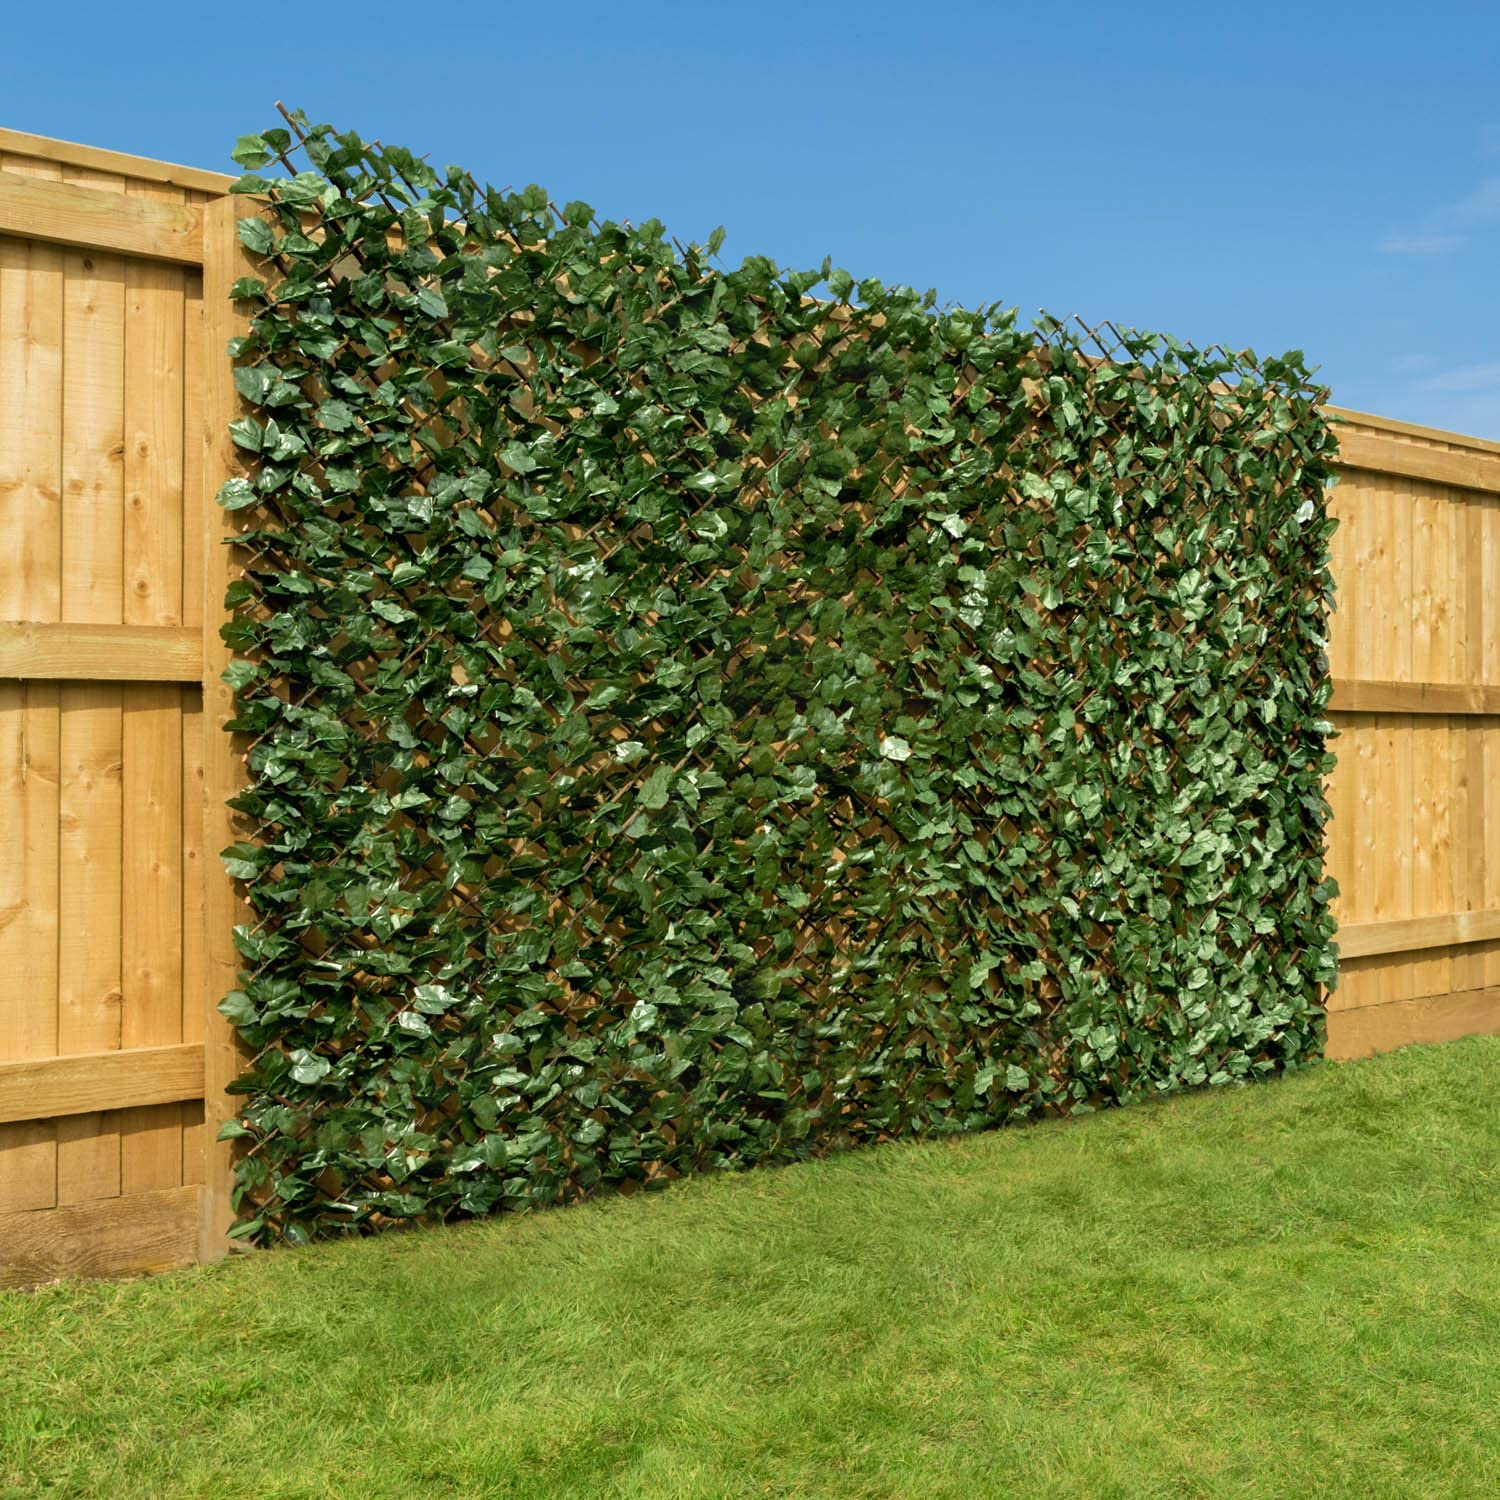 CHRISTOW Artificial Ivy Leaf Hedge Screening, Expanding Willow Trellis With  Leaves, Outdoor Garden Privacy Screen, Wall Fence Panel, H200m x W20m 20ft 20